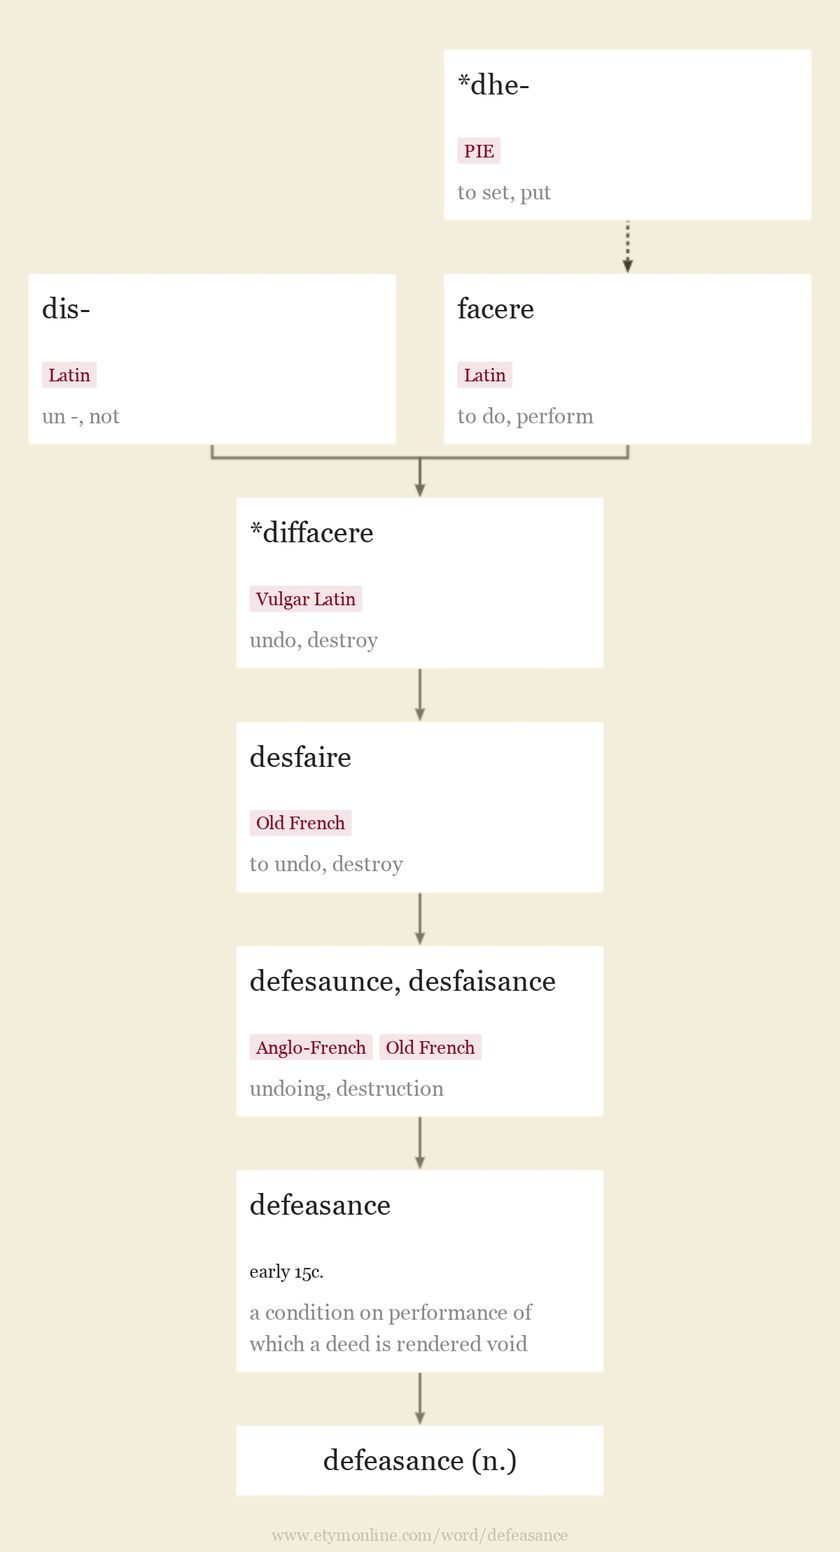 Origin and meaning of defeasance